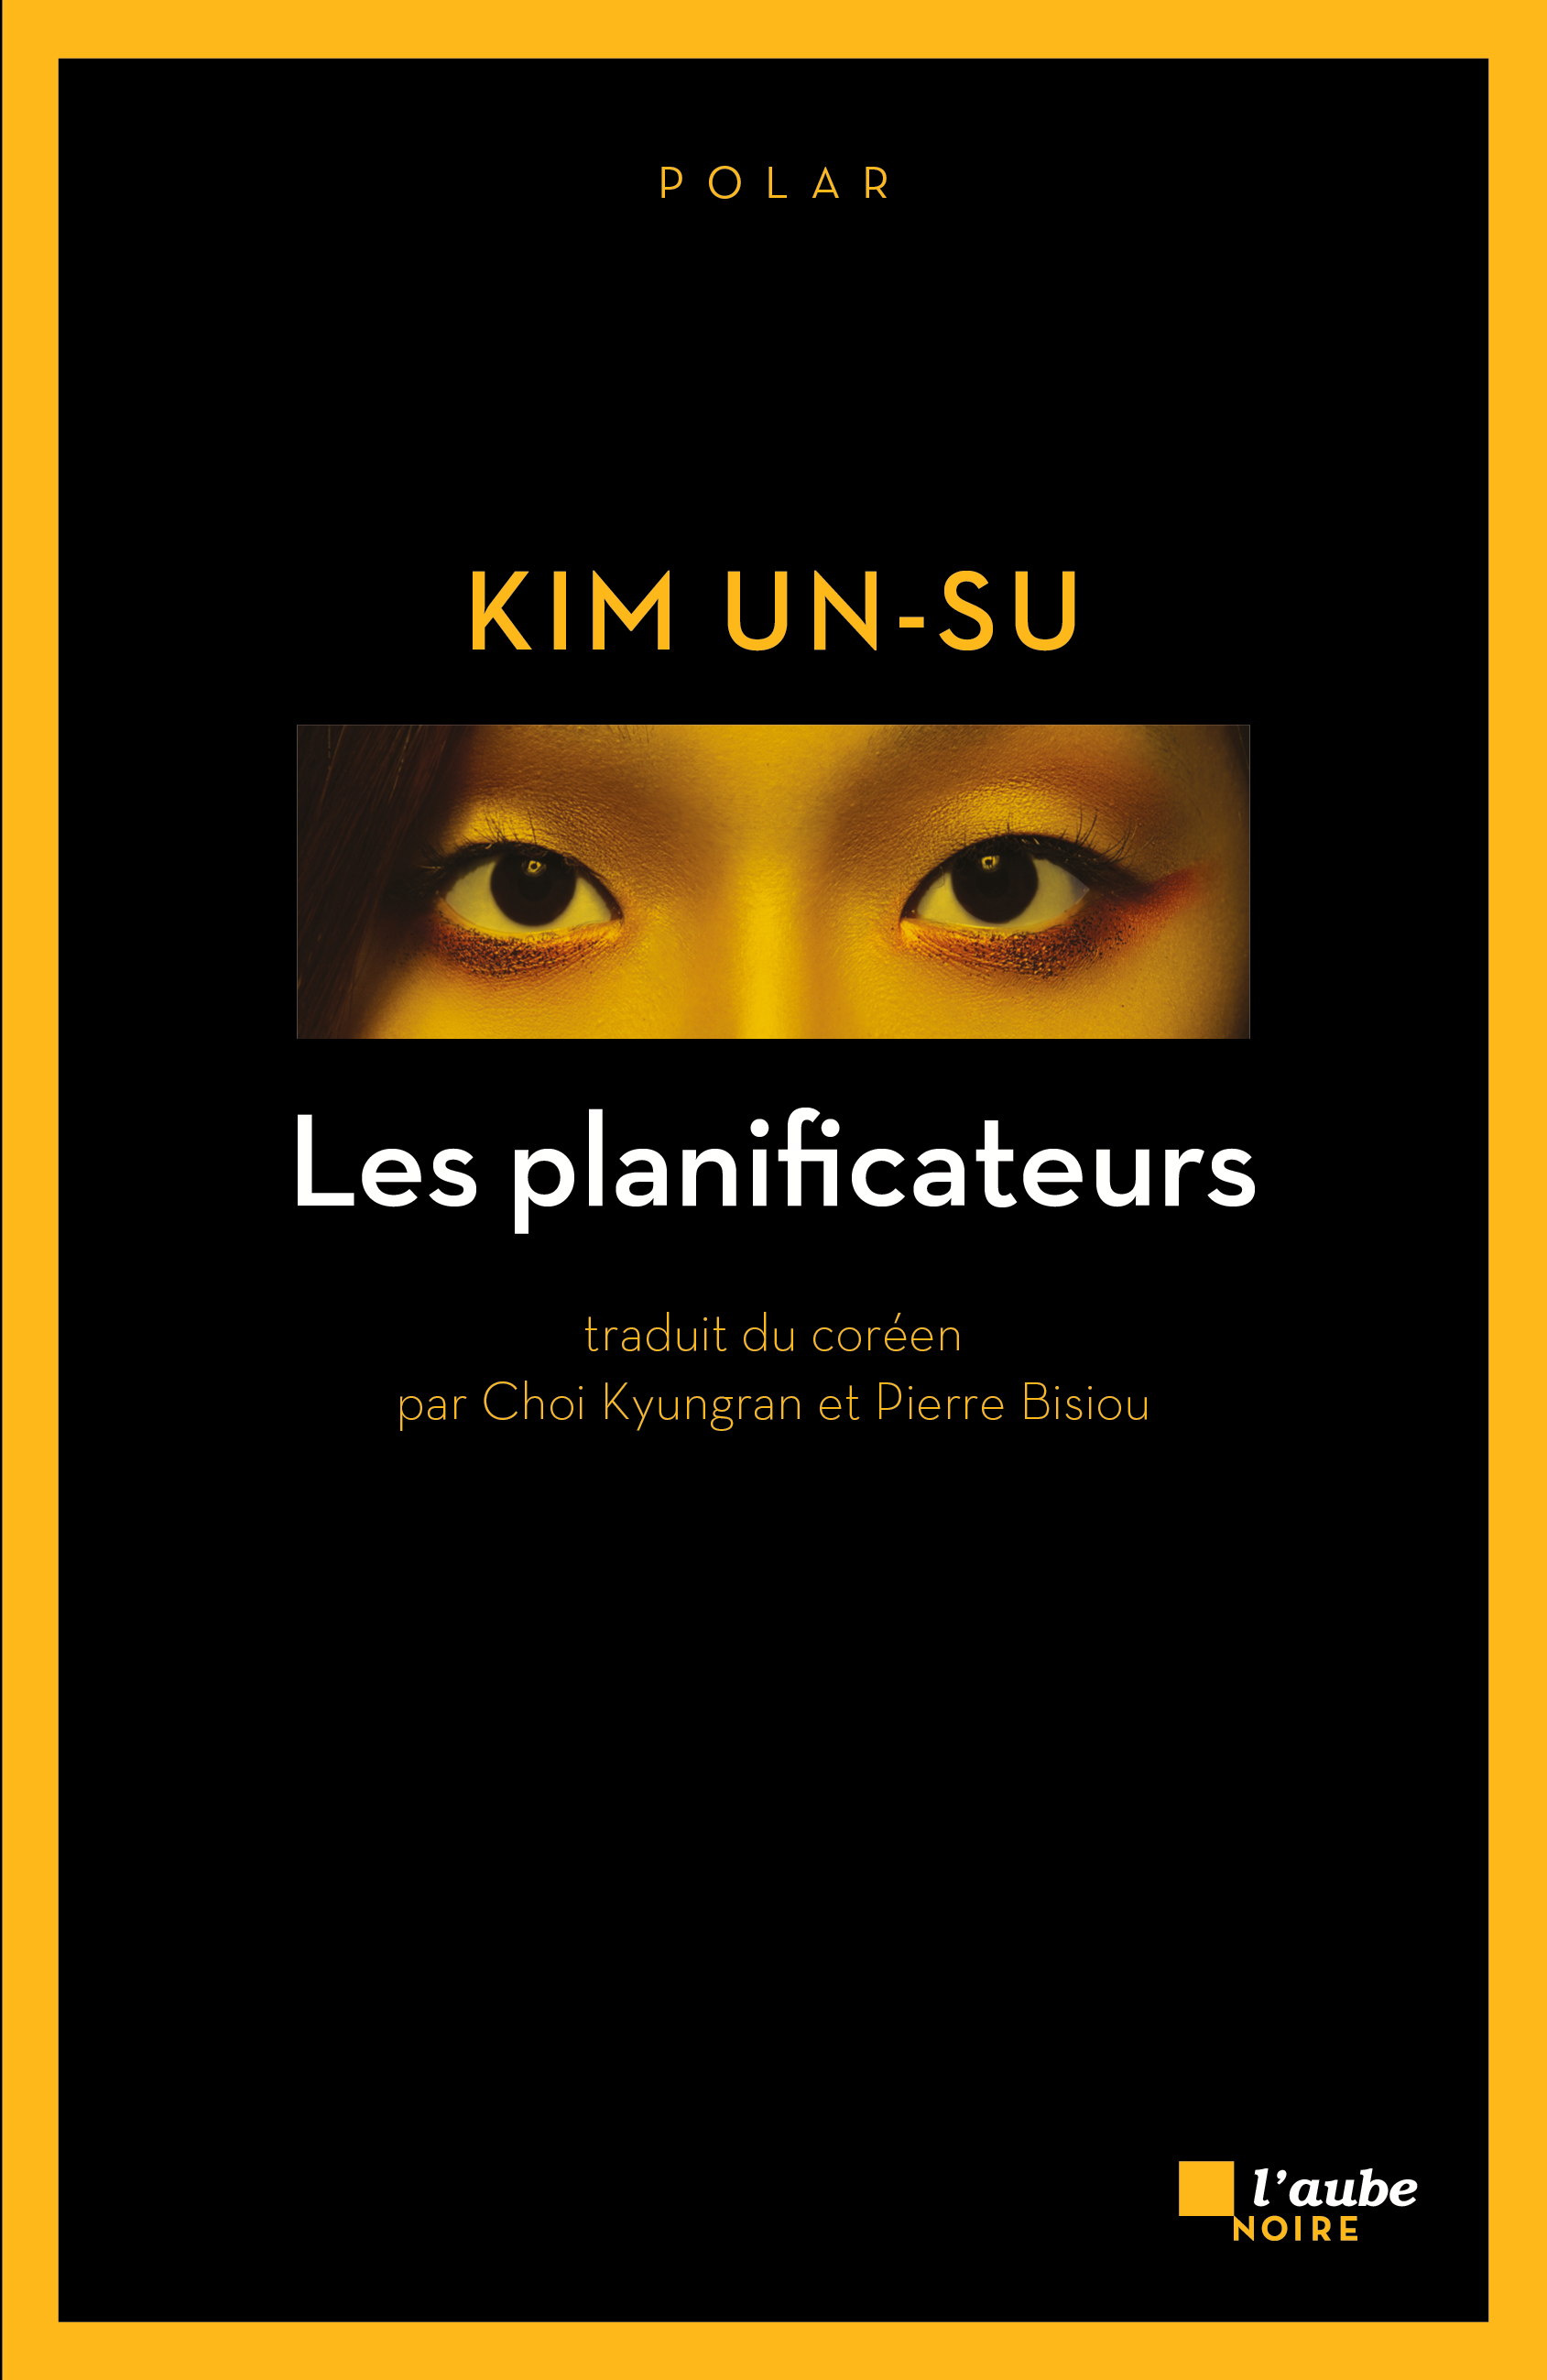 Les planificateurs